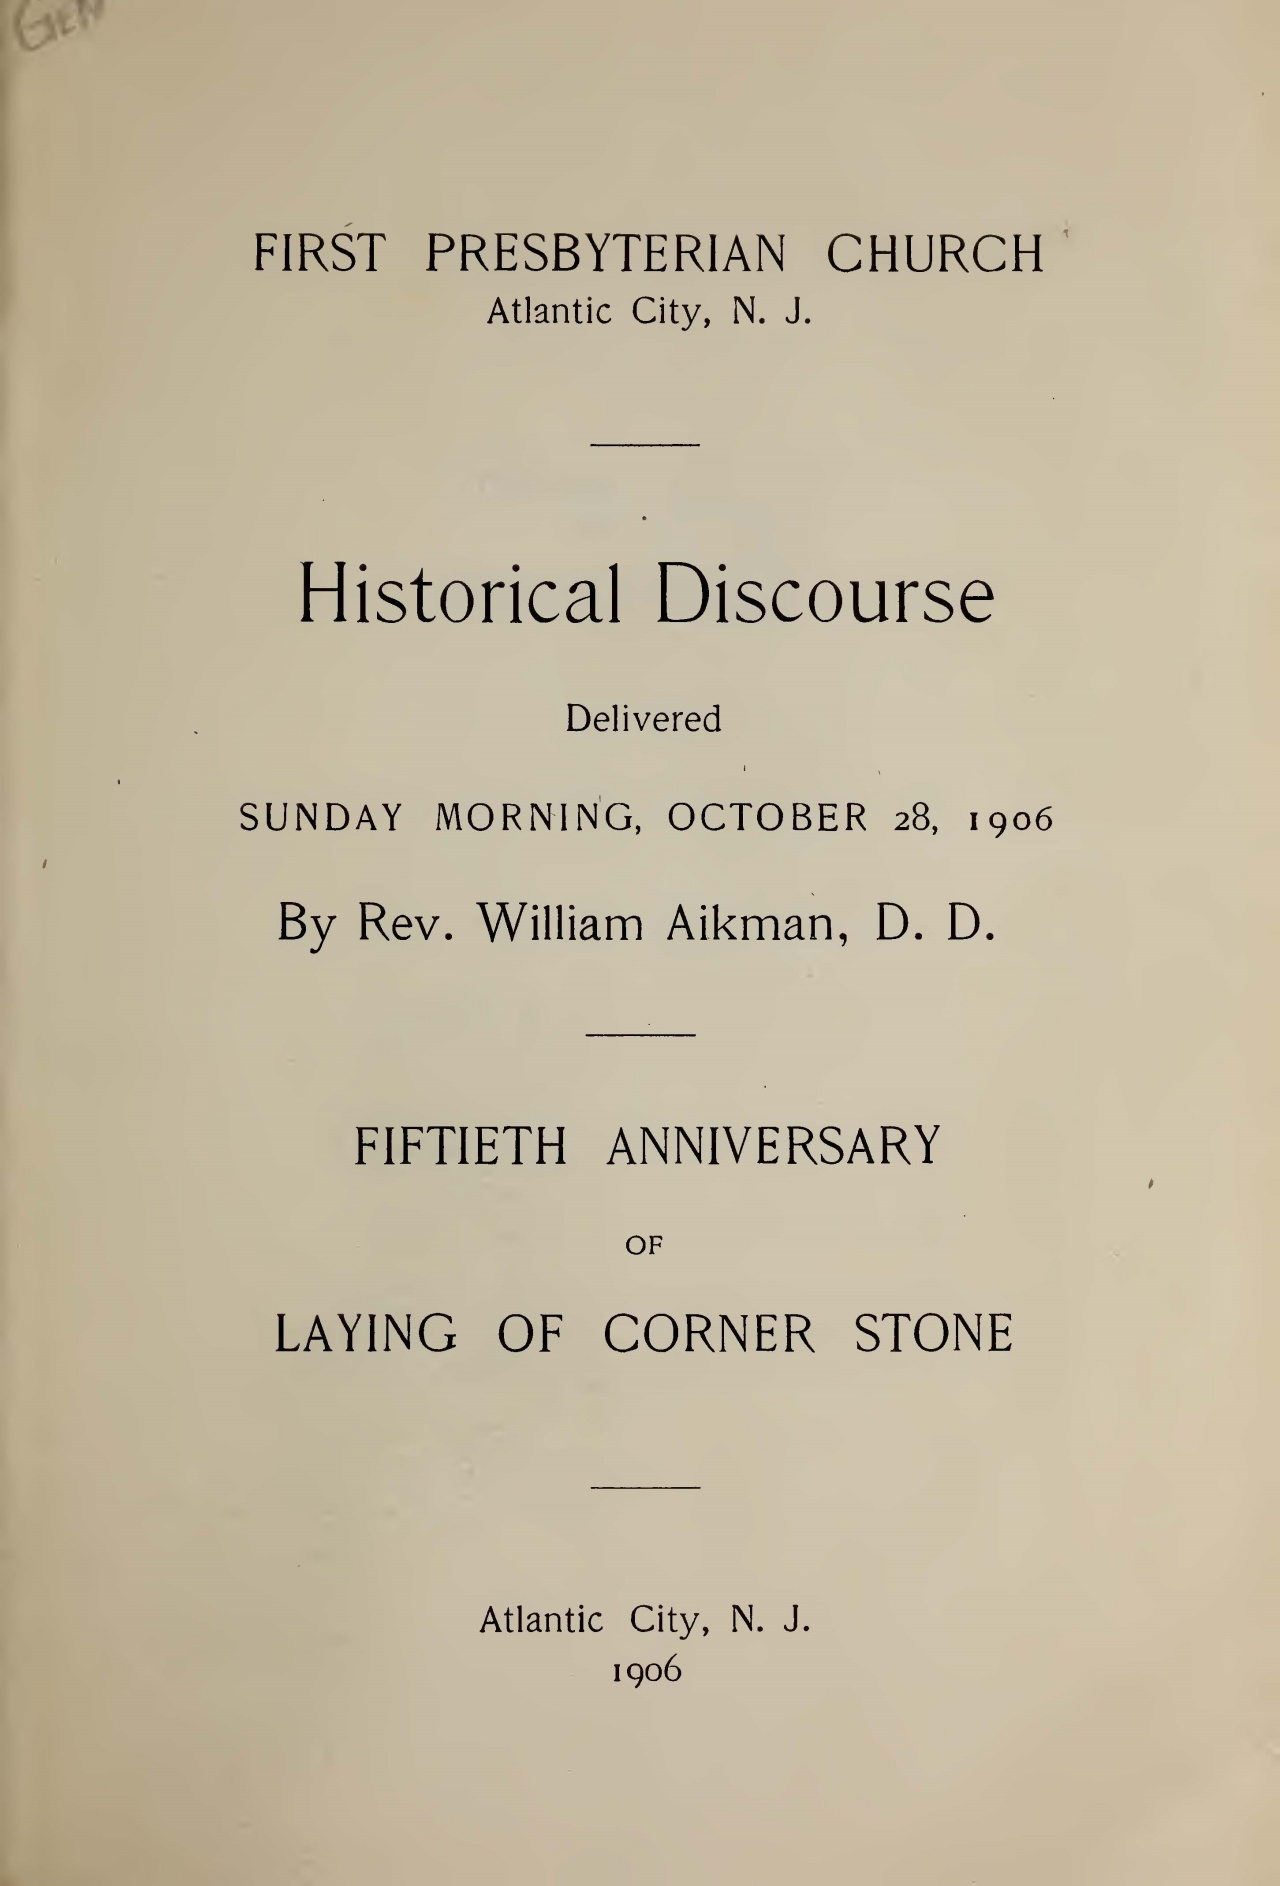 Aikman, William, Historical Discourse Title Page.jpg